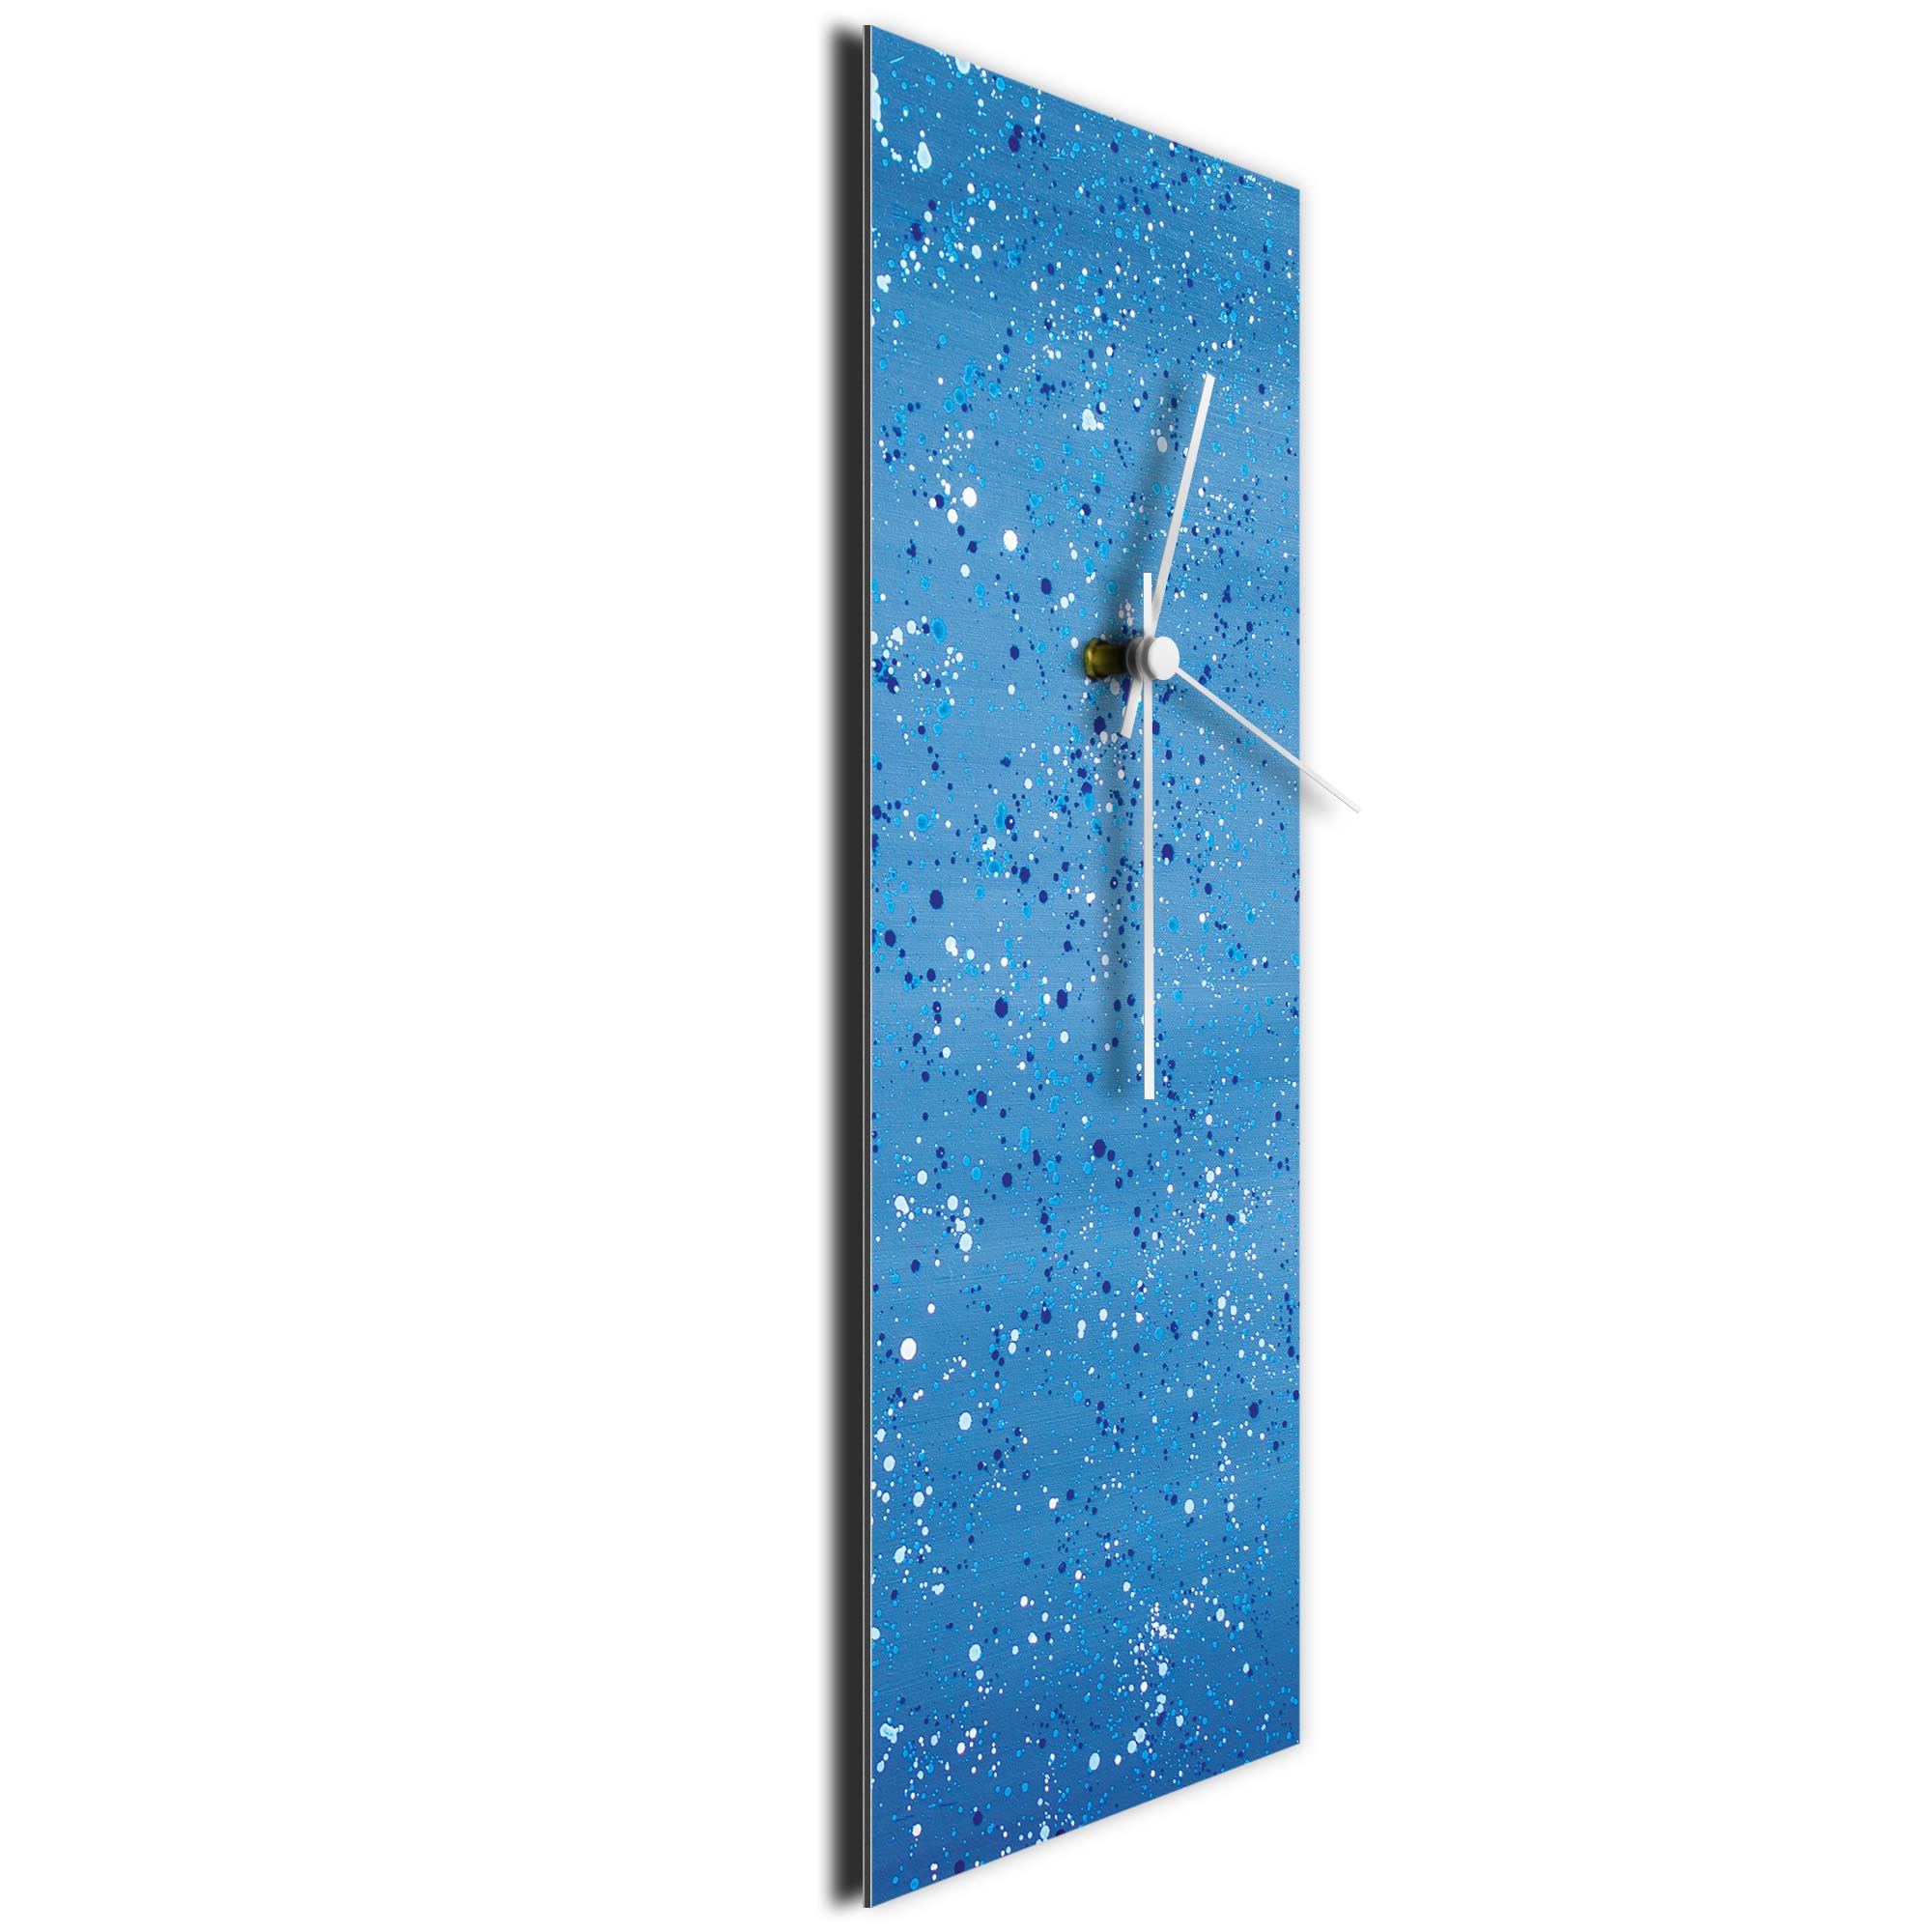 Blue Flecked Clock Large by Mendo Vasilevski - Urban Abstract Home Decor - Image 3